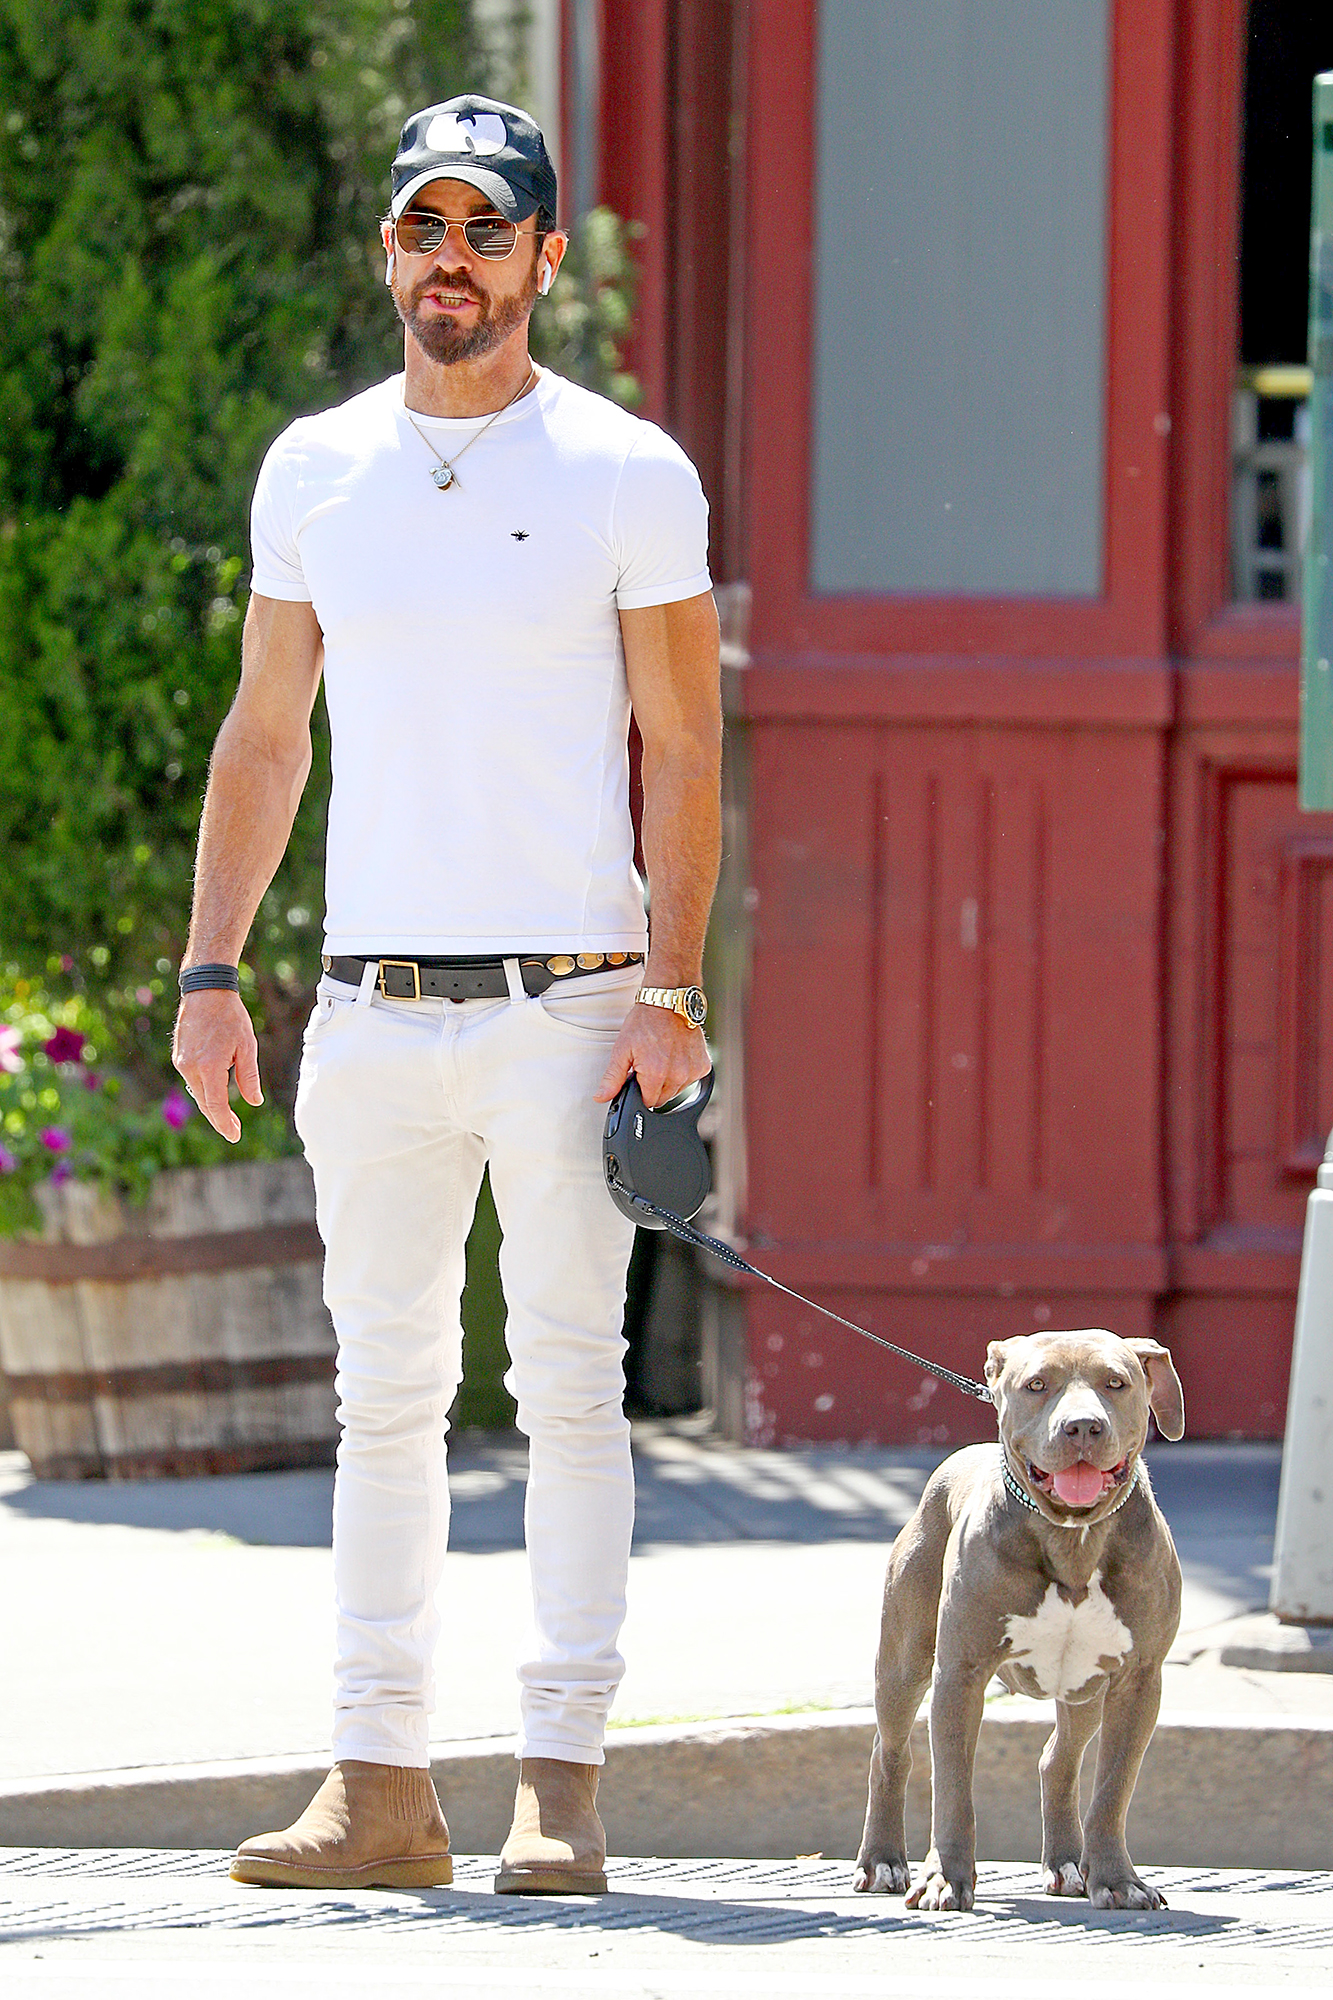 EXCLUSIVE: Justin Theroux is Pictured with His New Rescue Pitt Bull in New York City